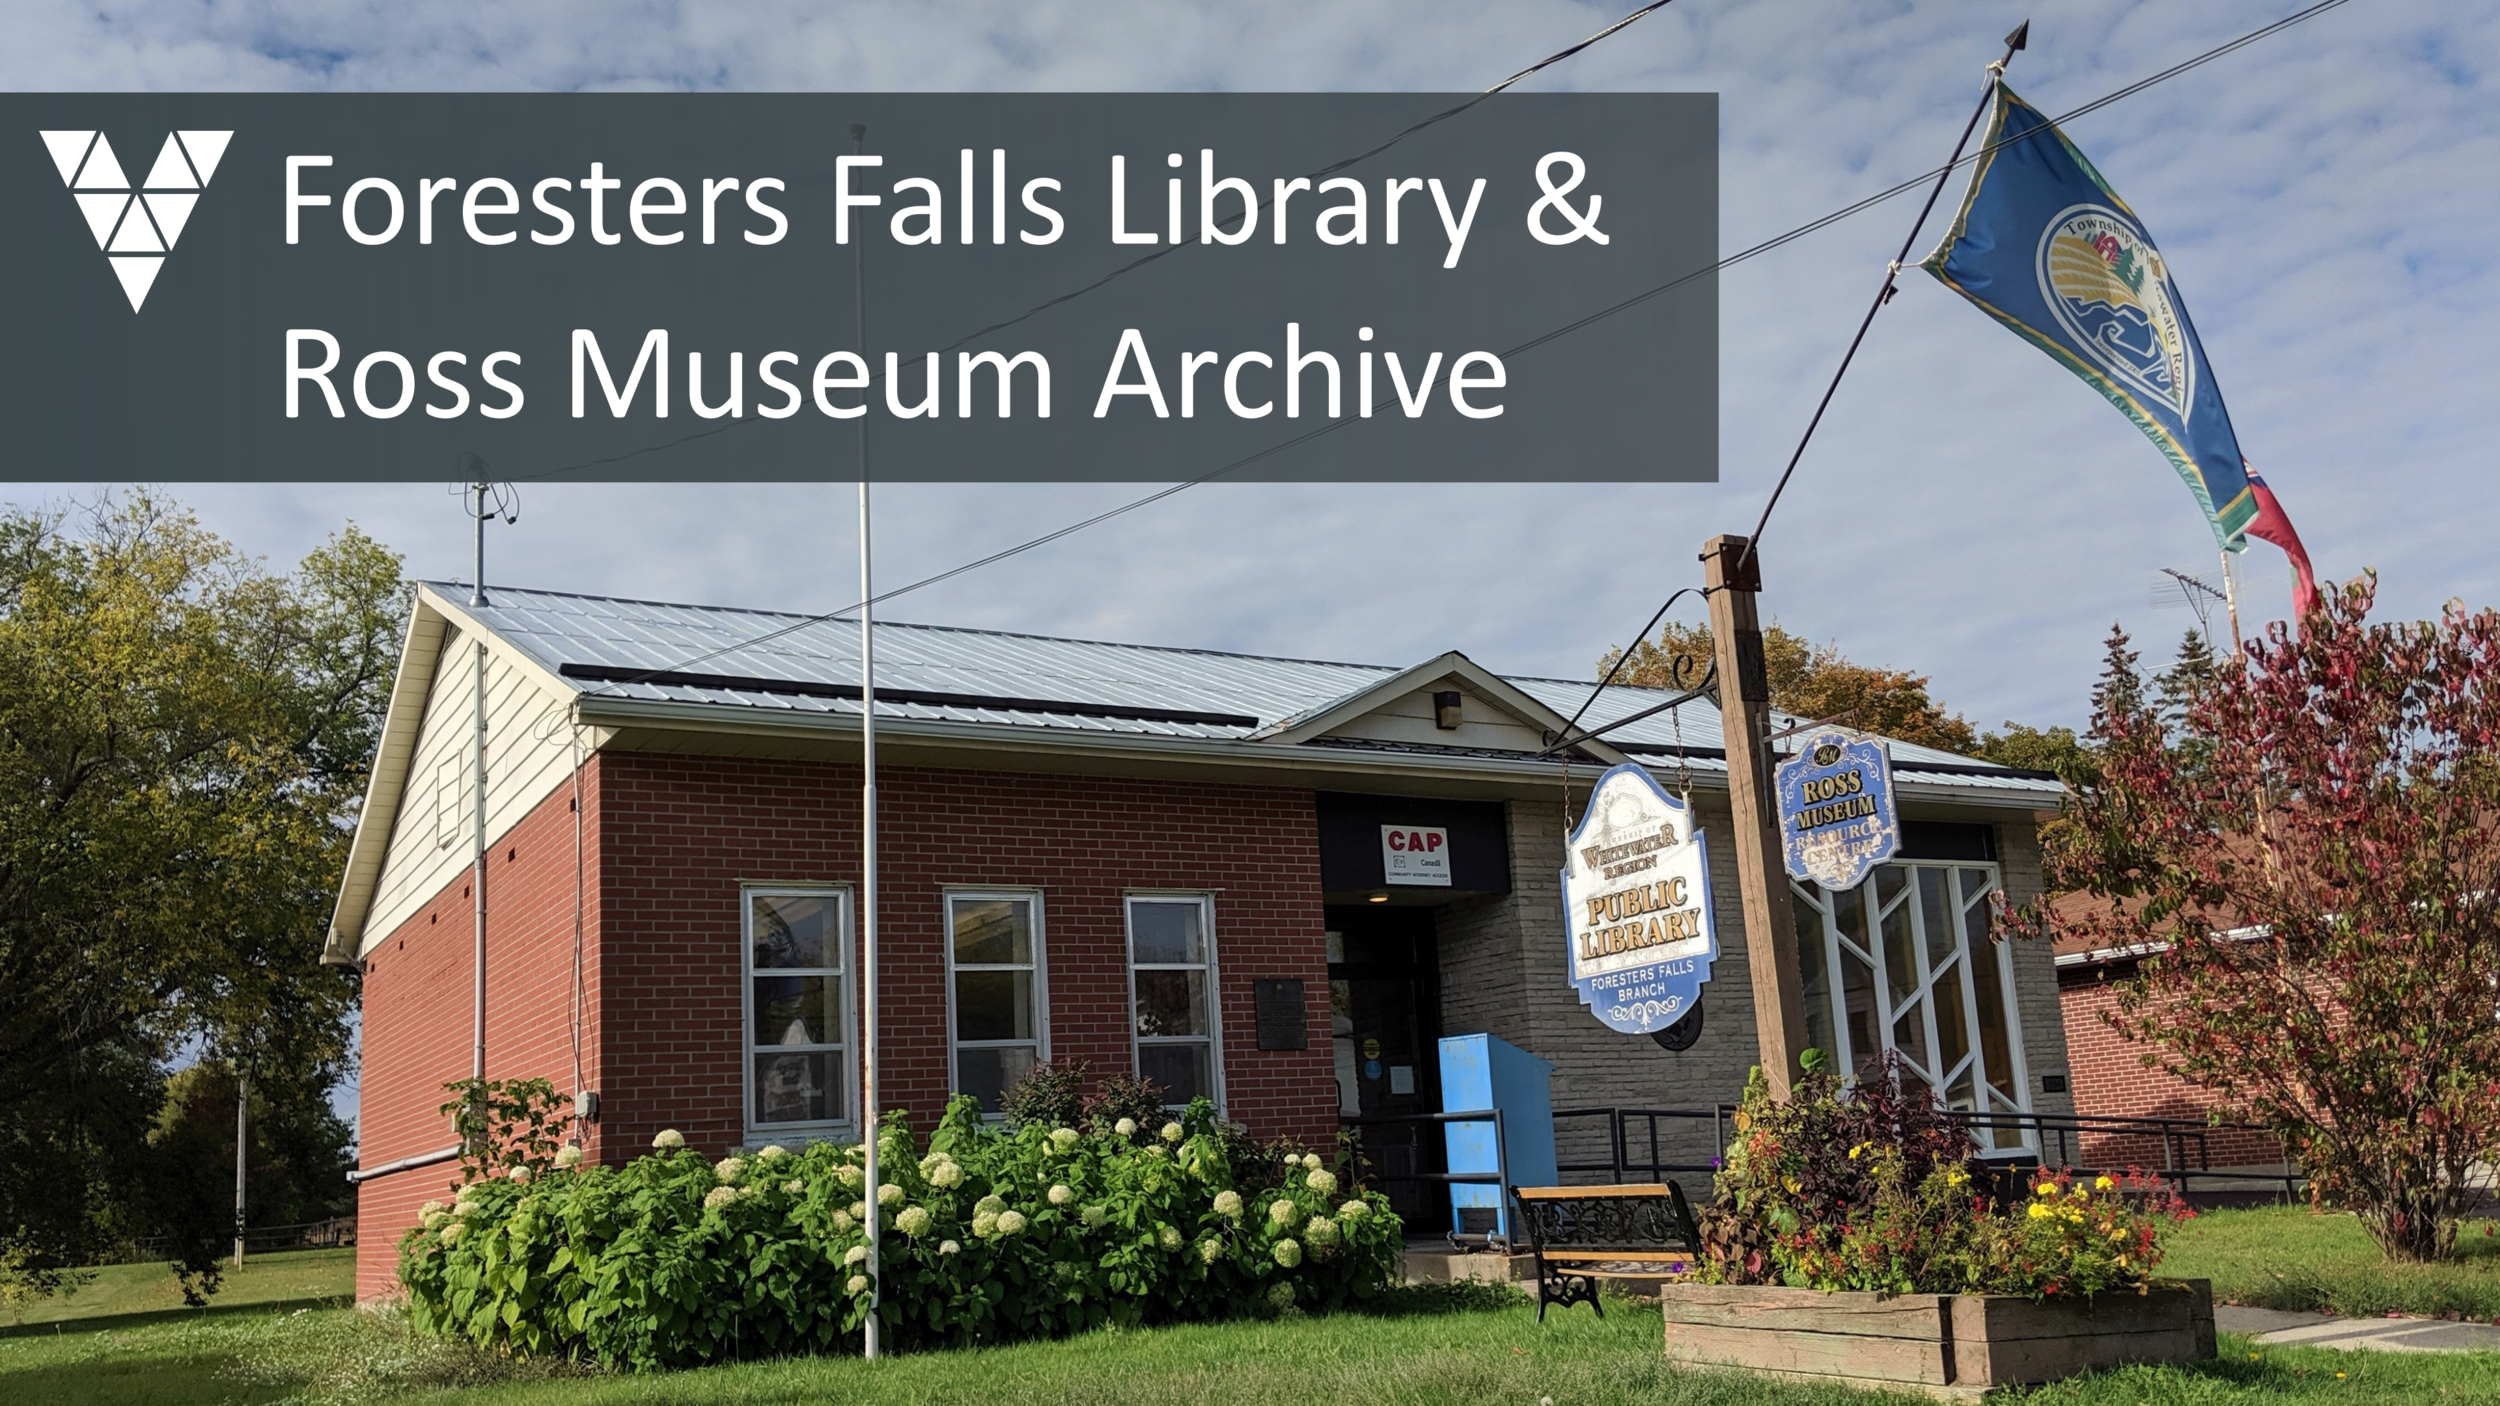 Foresters Falls Library & Ross Museum Archive